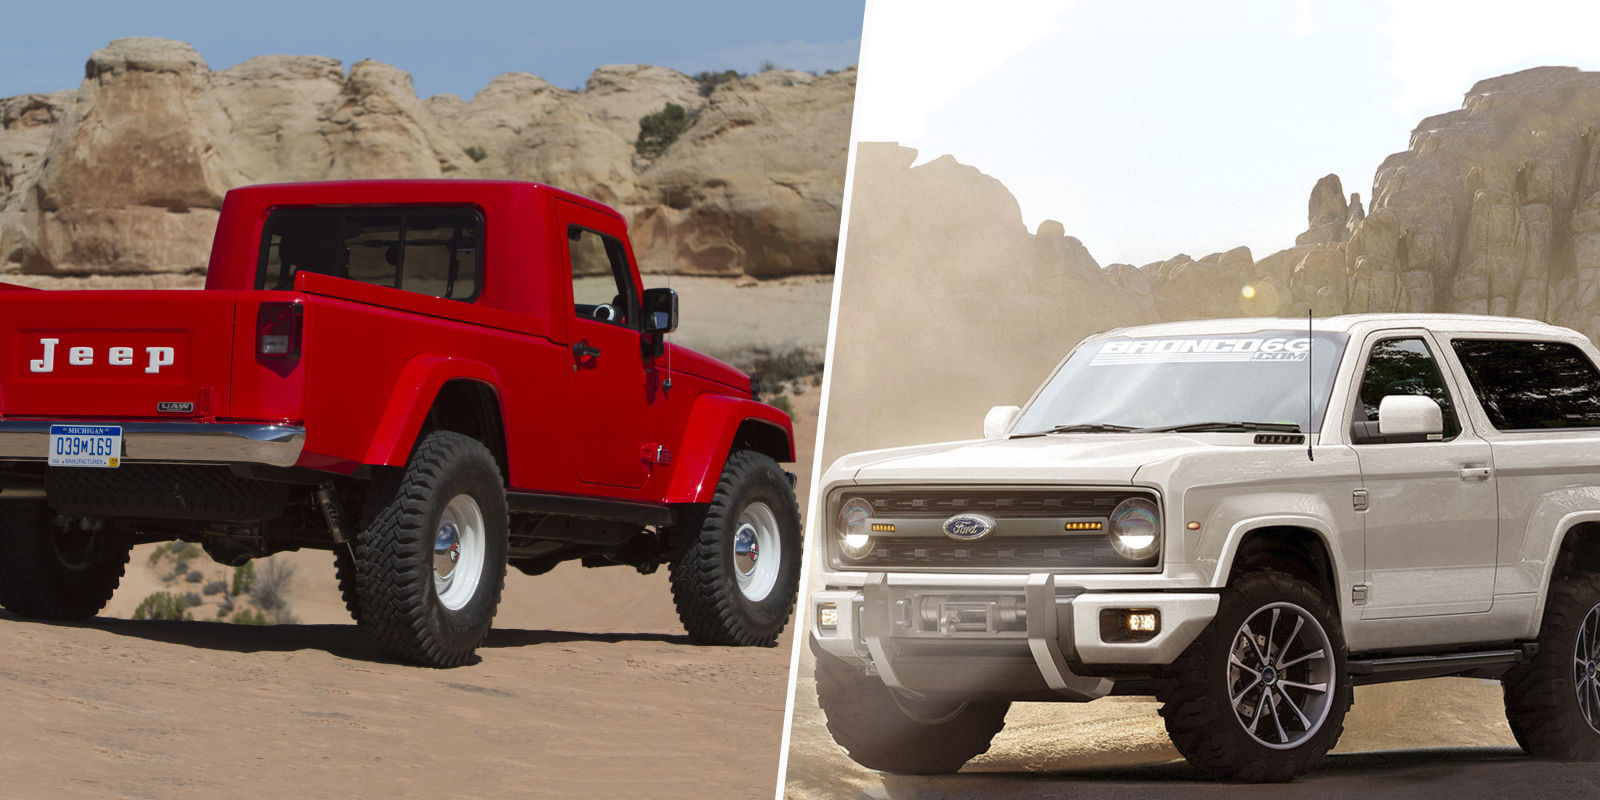 2017 Jeep Wrangler Pickup vs. 2020 Ford Bronco: Which Daydream 4x4 Is Best?